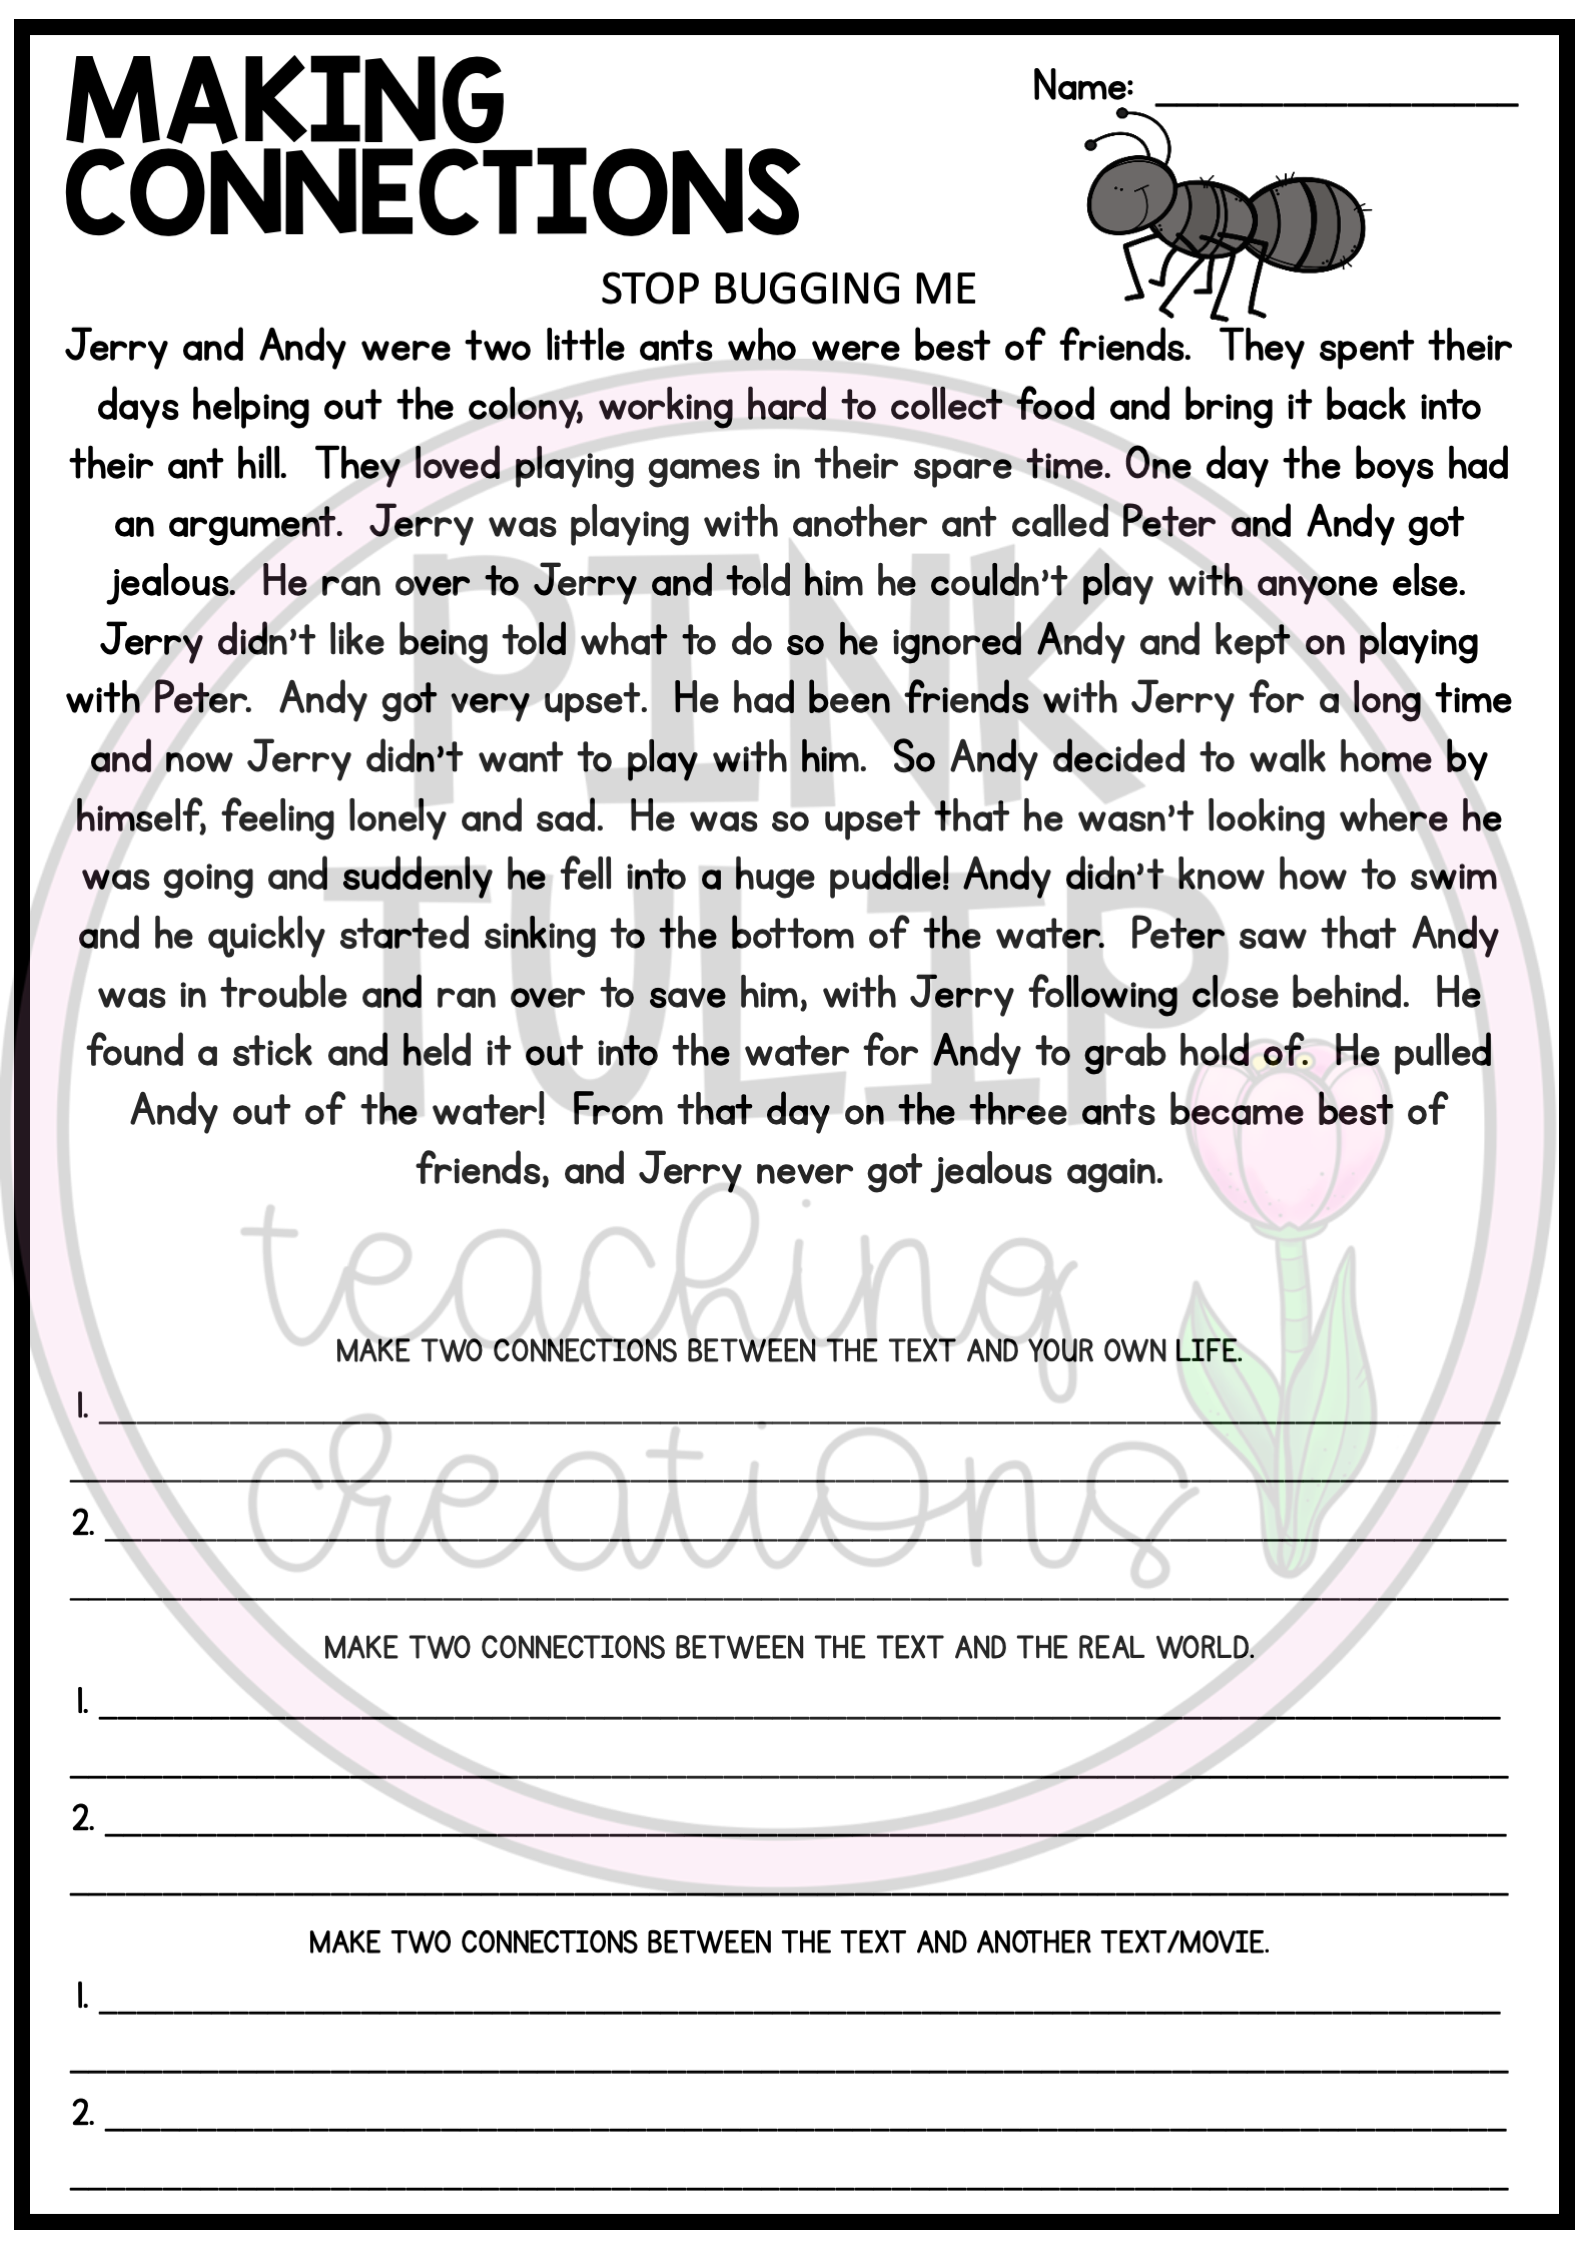 Making Connections Reading Worksheet Pack Text To Self Text To Self Connection Reading Worksheets [ 2249 x 1589 Pixel ]